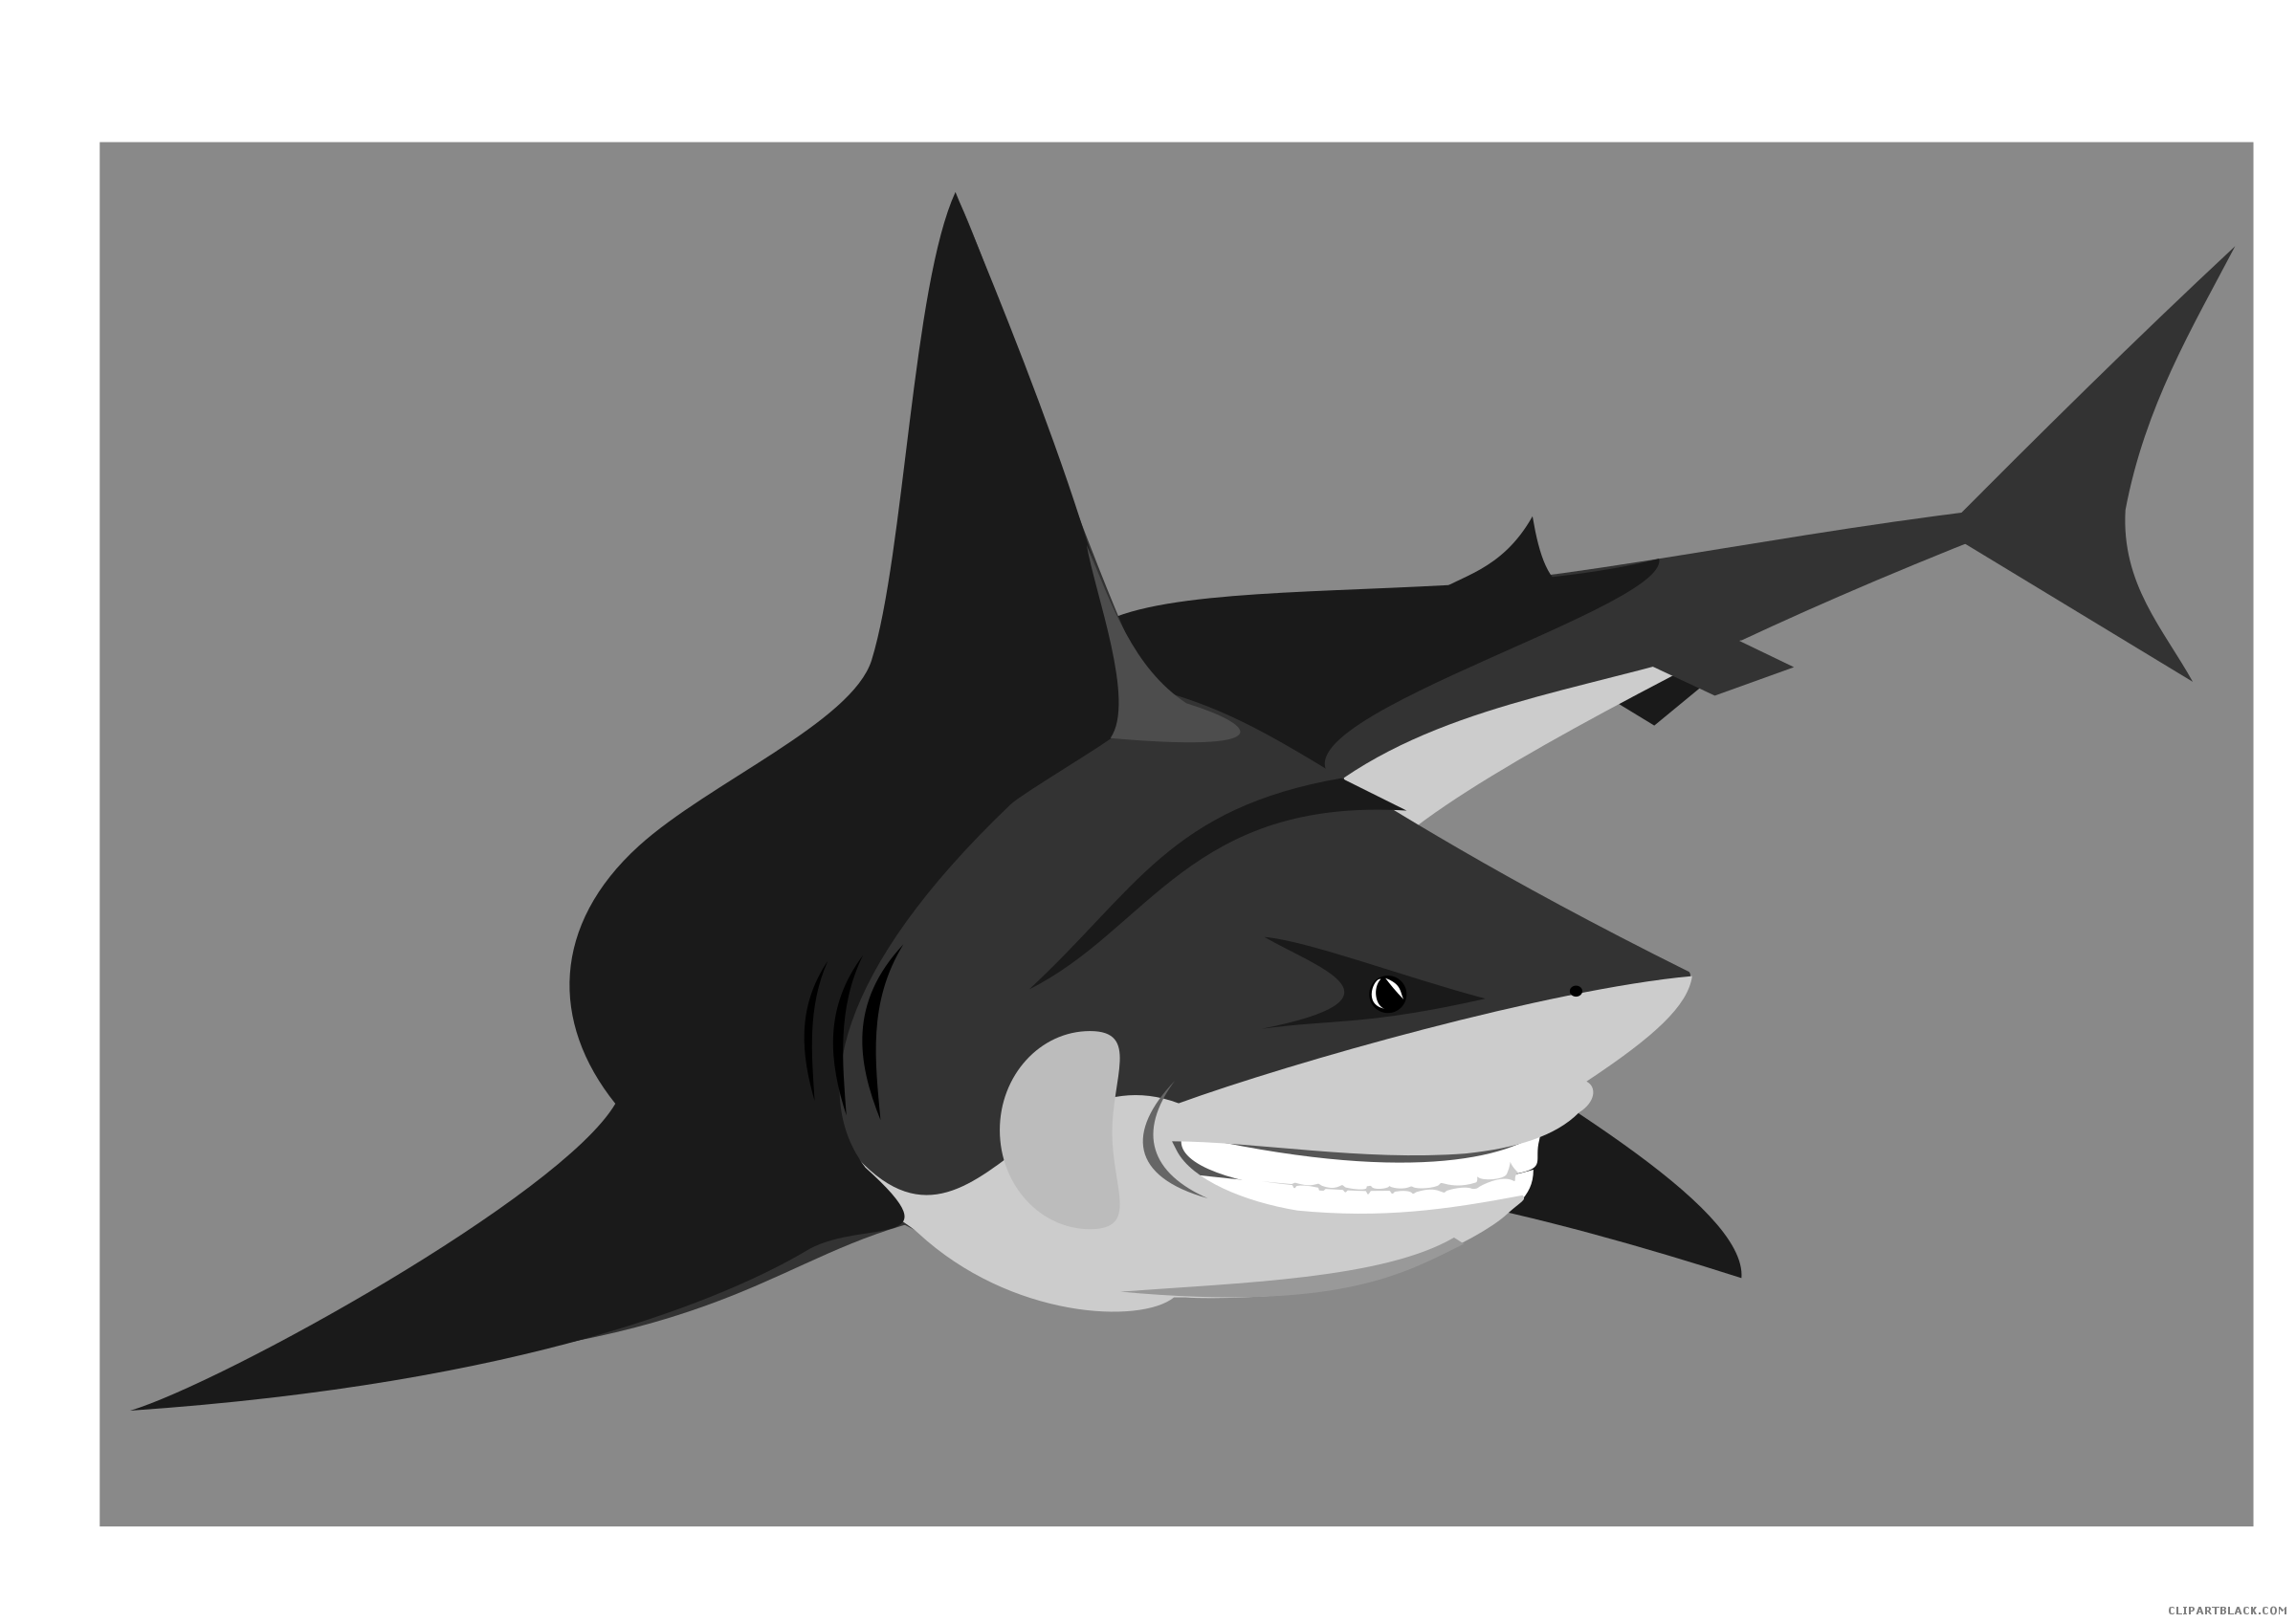 Shark animal free black. Worm clipart friendly